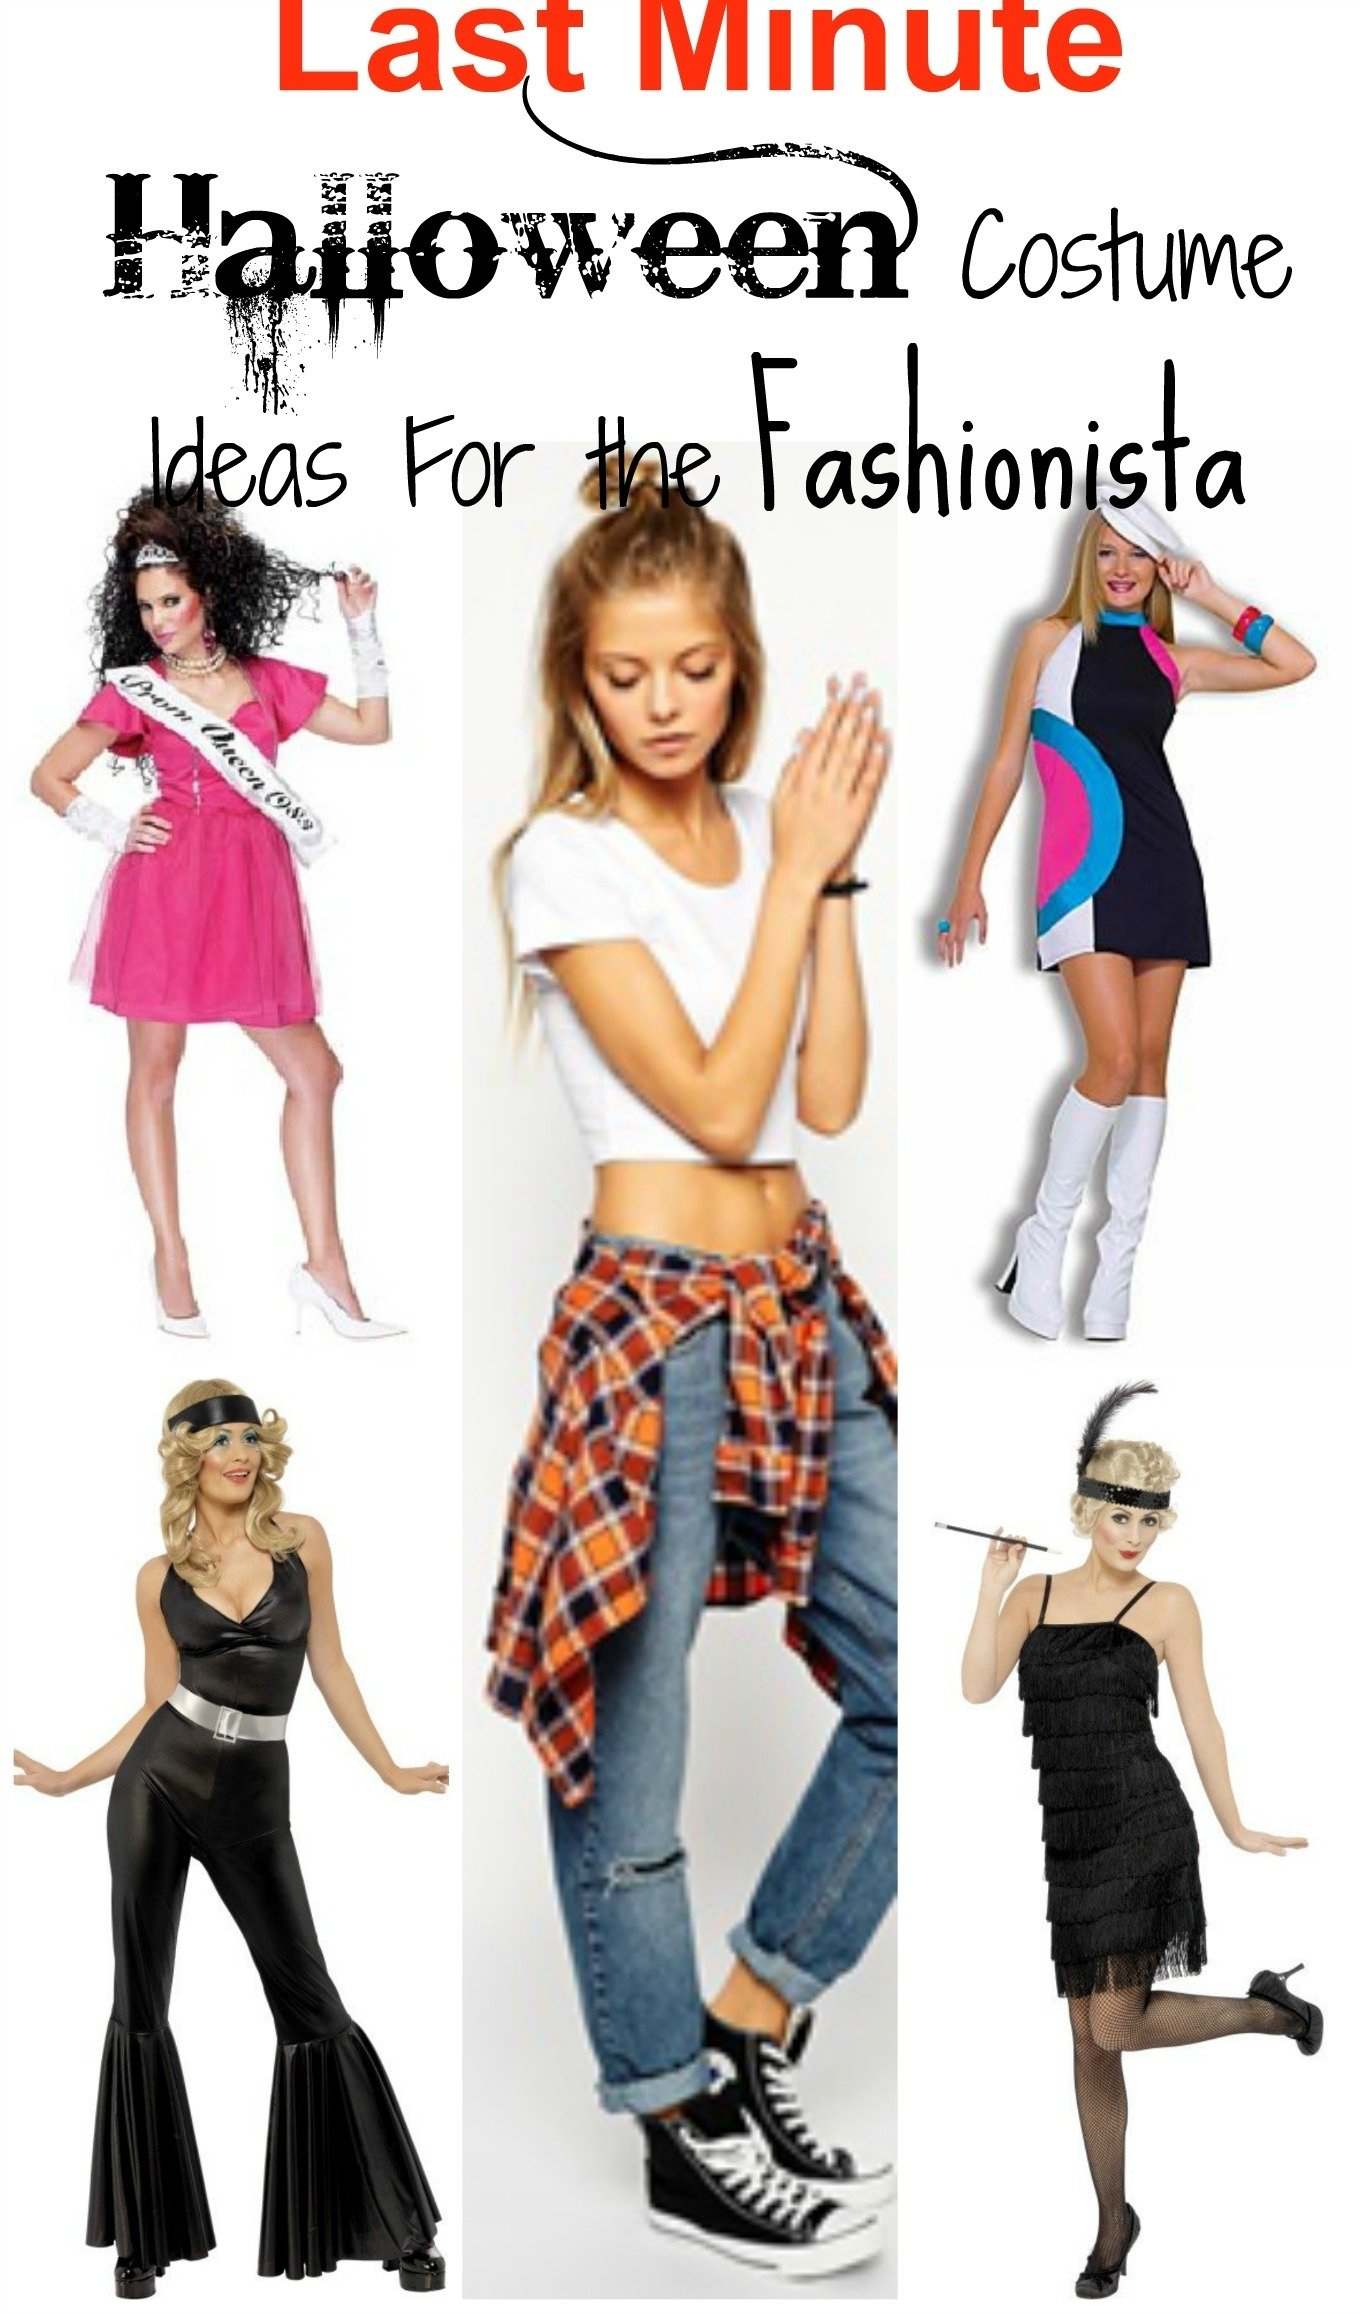 10 Stylish Ideas For Halloween Costumes For Women 5 last minute halloween costume ideas for the fashionista 2 2021